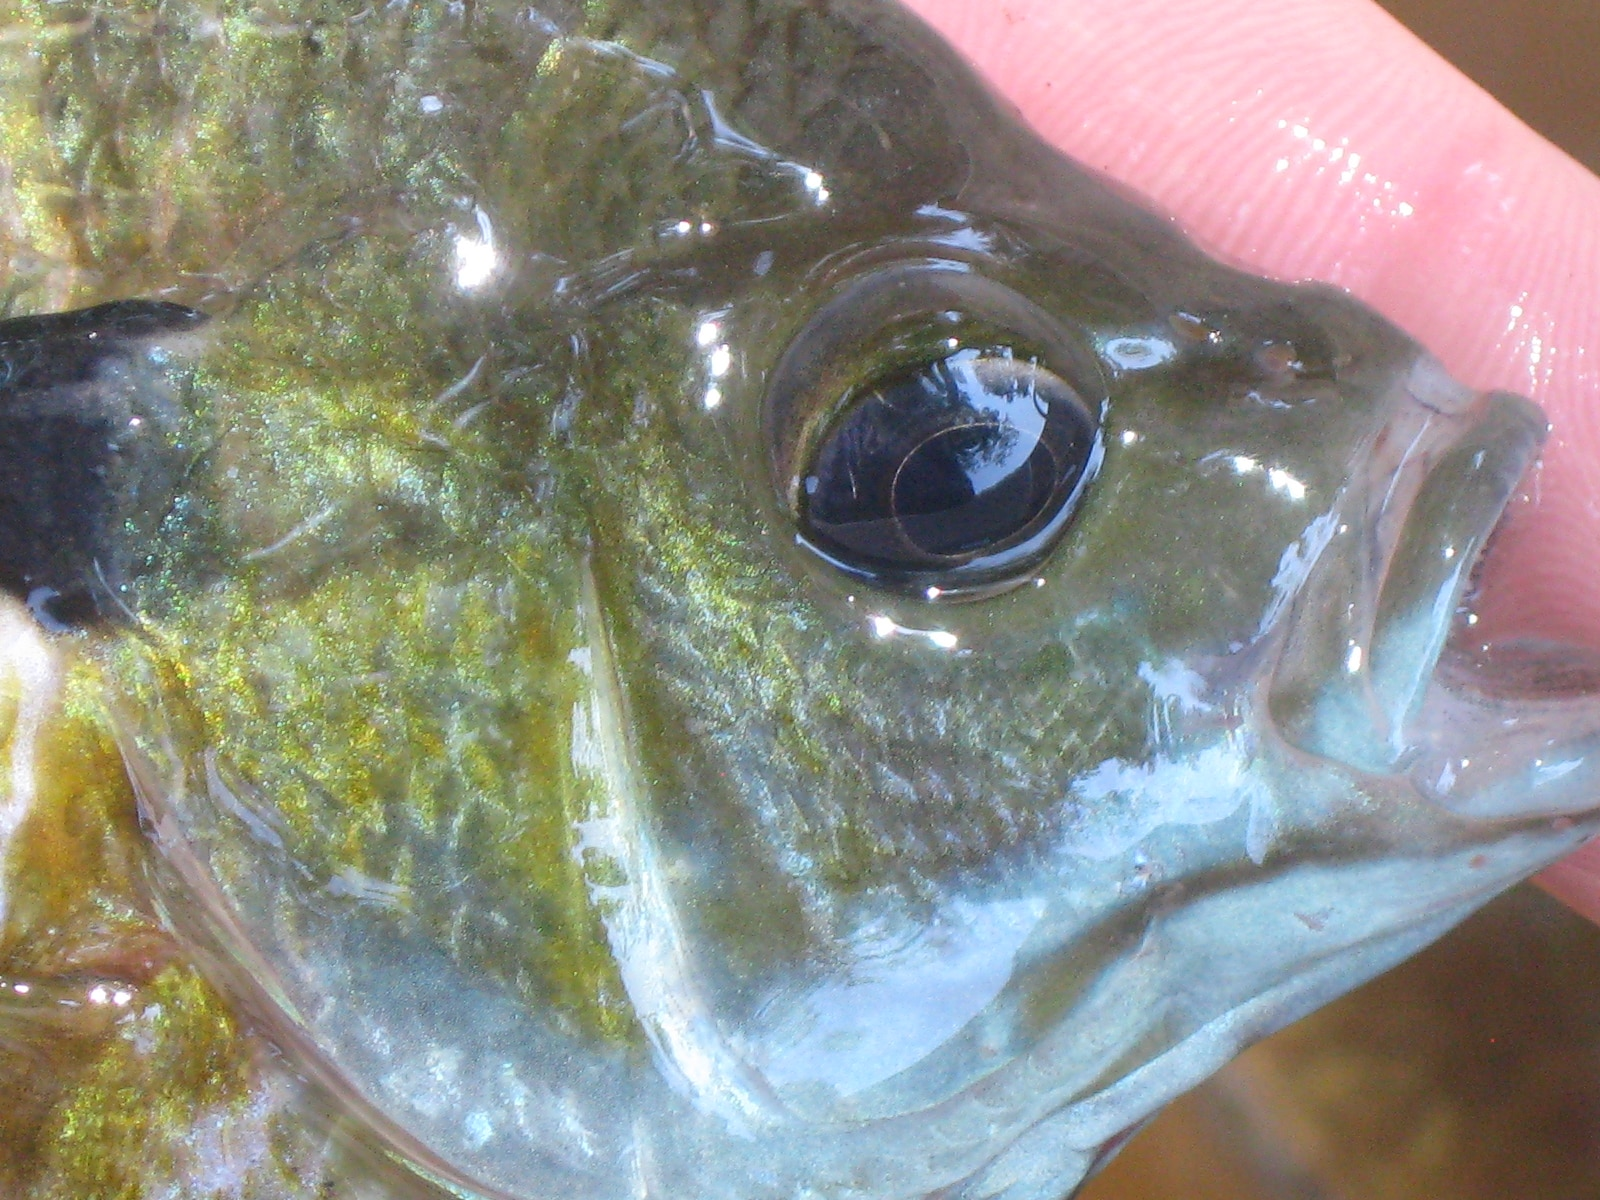 Flyfishing for the voracious bluegill